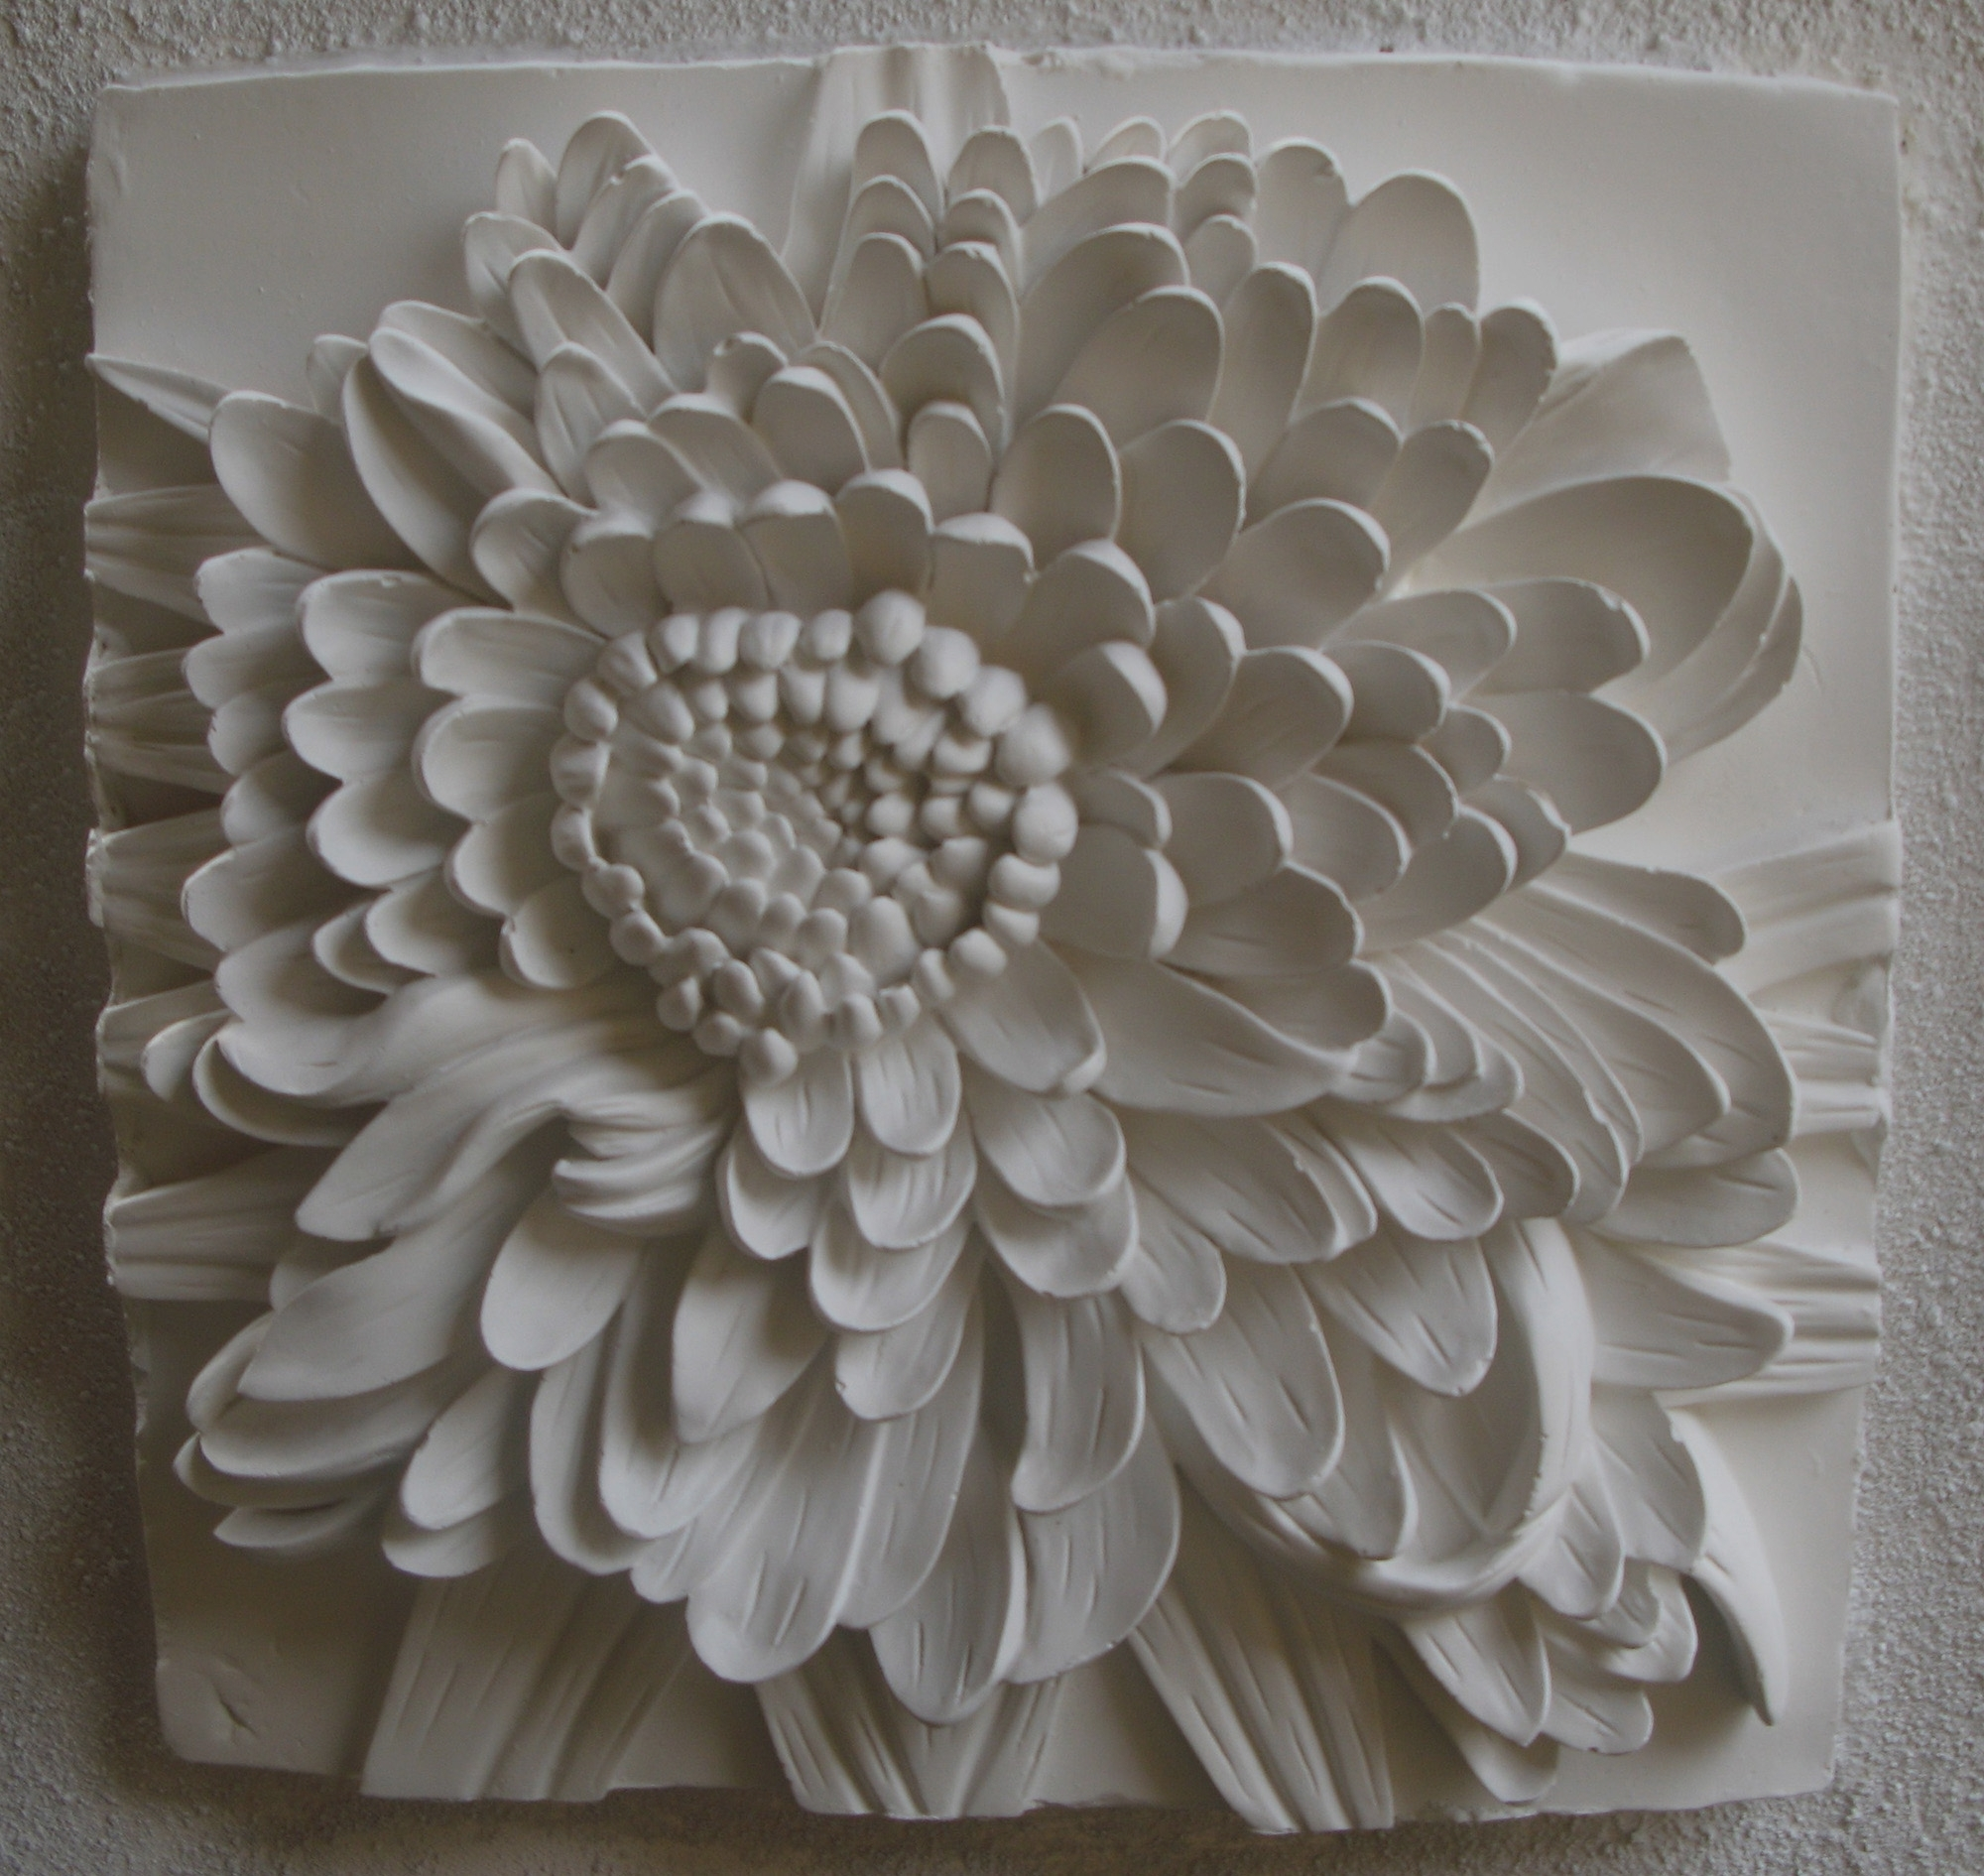 Most Recent Diy 3D Flower Canvas Wall Art Diy Mothers Day Gift Youtube Within Flowers 3D Wall Art (View 12 of 15)